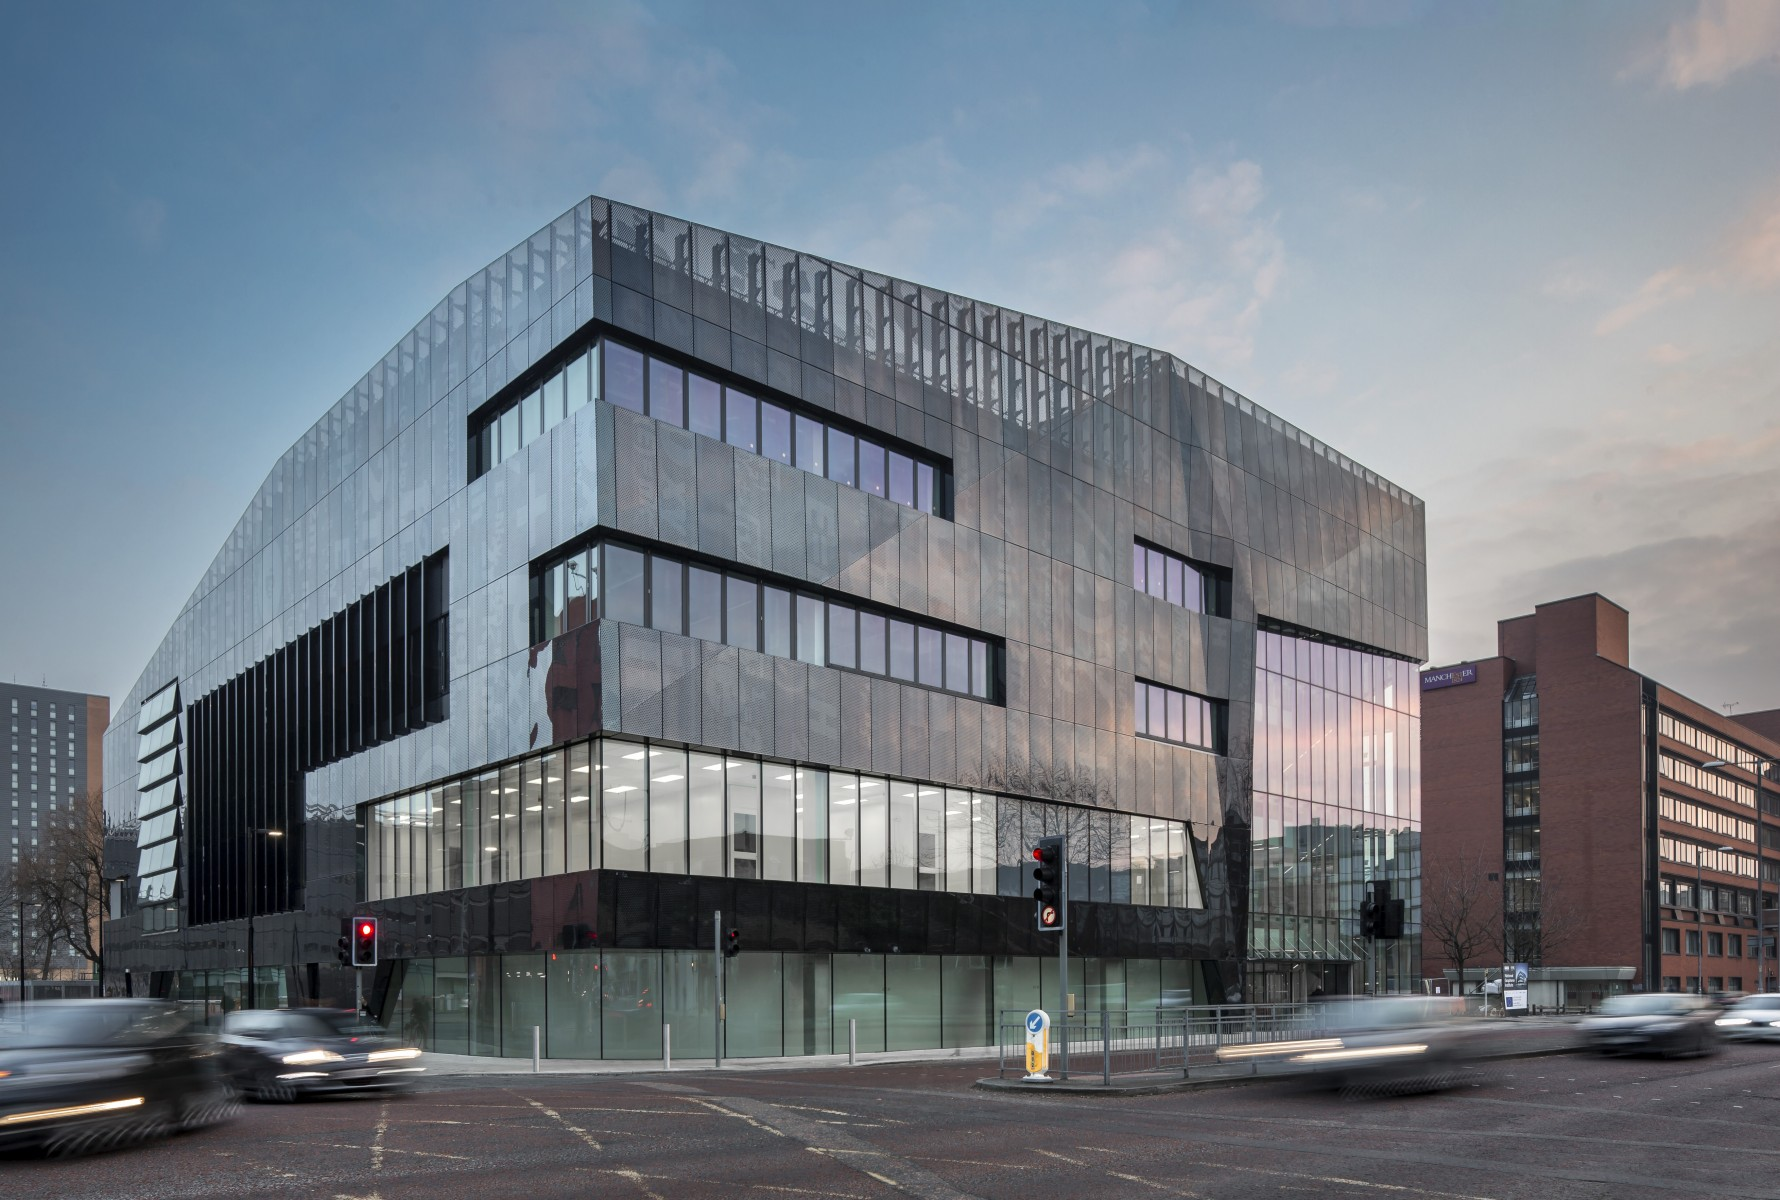 External shot of National Graphene Institute with sun reflecting on glass windows